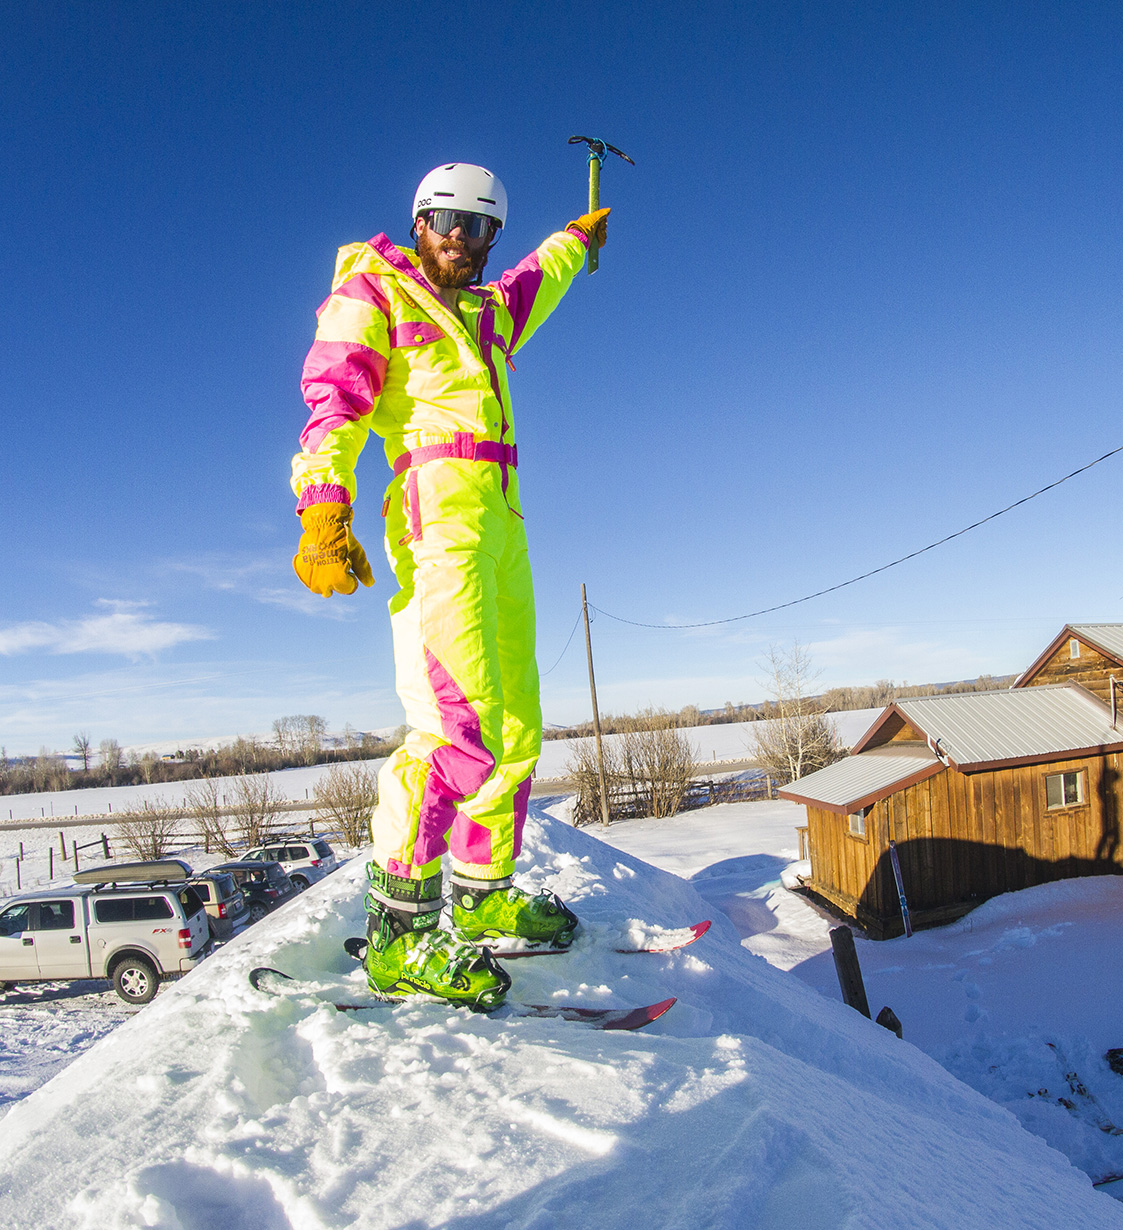 Cy Whitling reviews the Tipsy Elves Powder Blaster Onesie Ski Suit for Blister Gear Review.